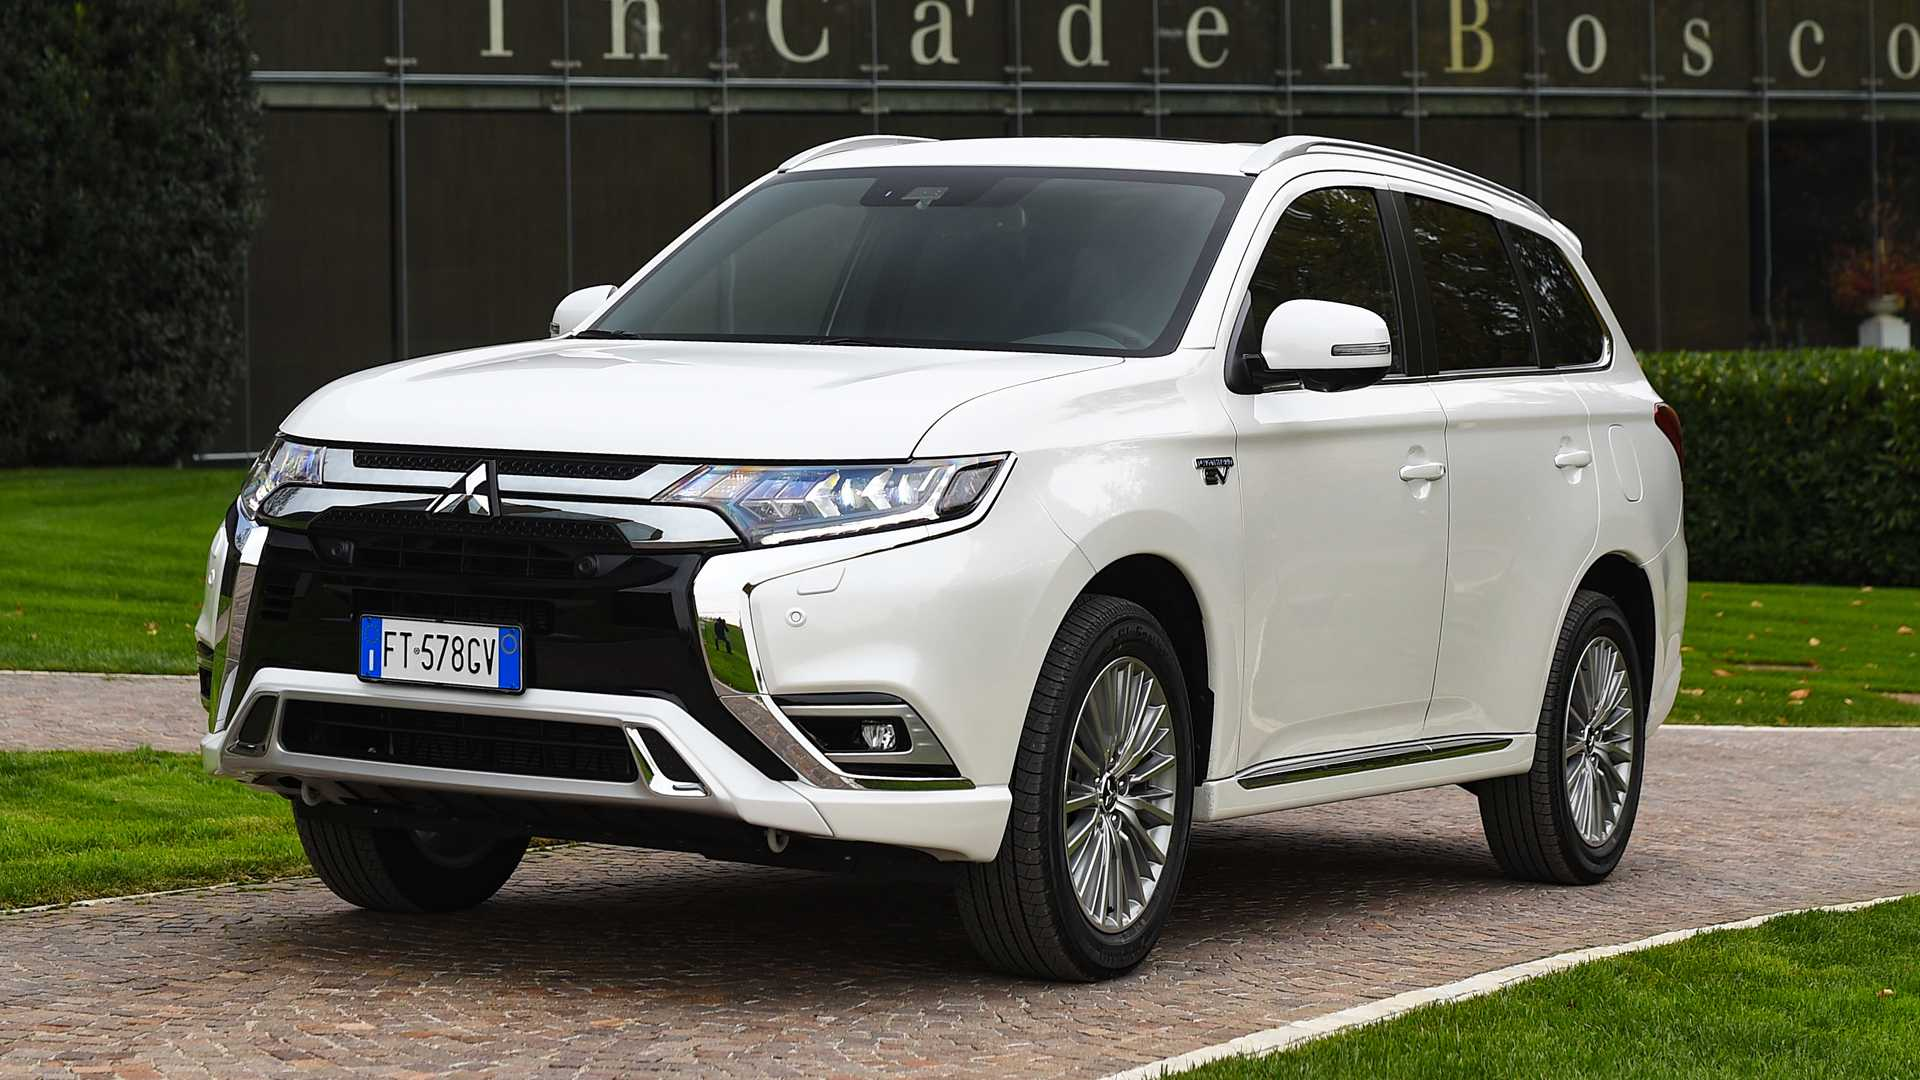 Mitsubishi Is Expected To Update Outlander PHEV In The U.S.